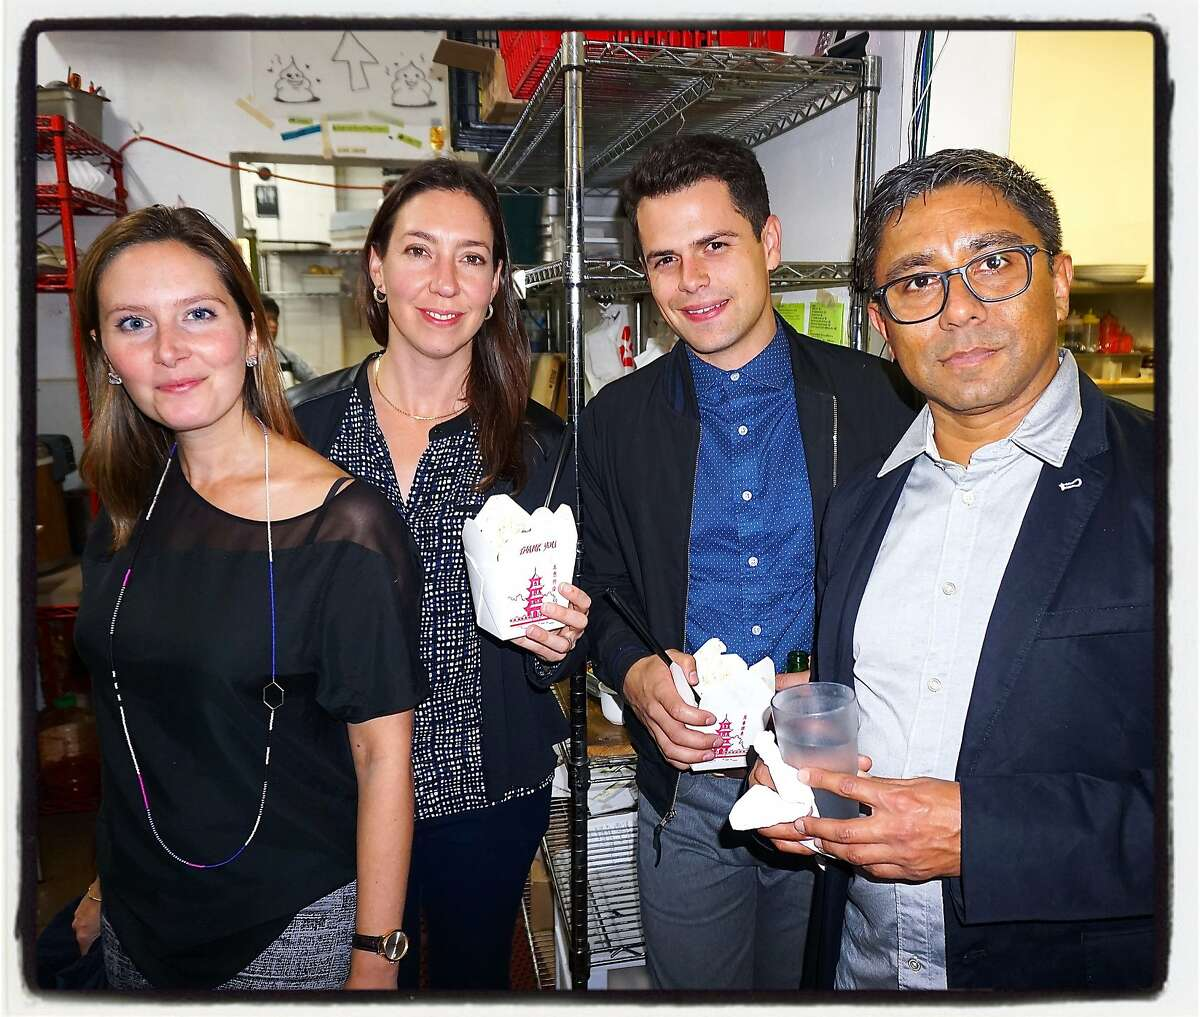 Altman Siegel director Daelyn Farnham (at left) with gallerist Claudia Altman-Siegal, Ratio 3 Director Theo Elliot and gallerist Chris Perez at Mission Chinese Food. Nov 2015.